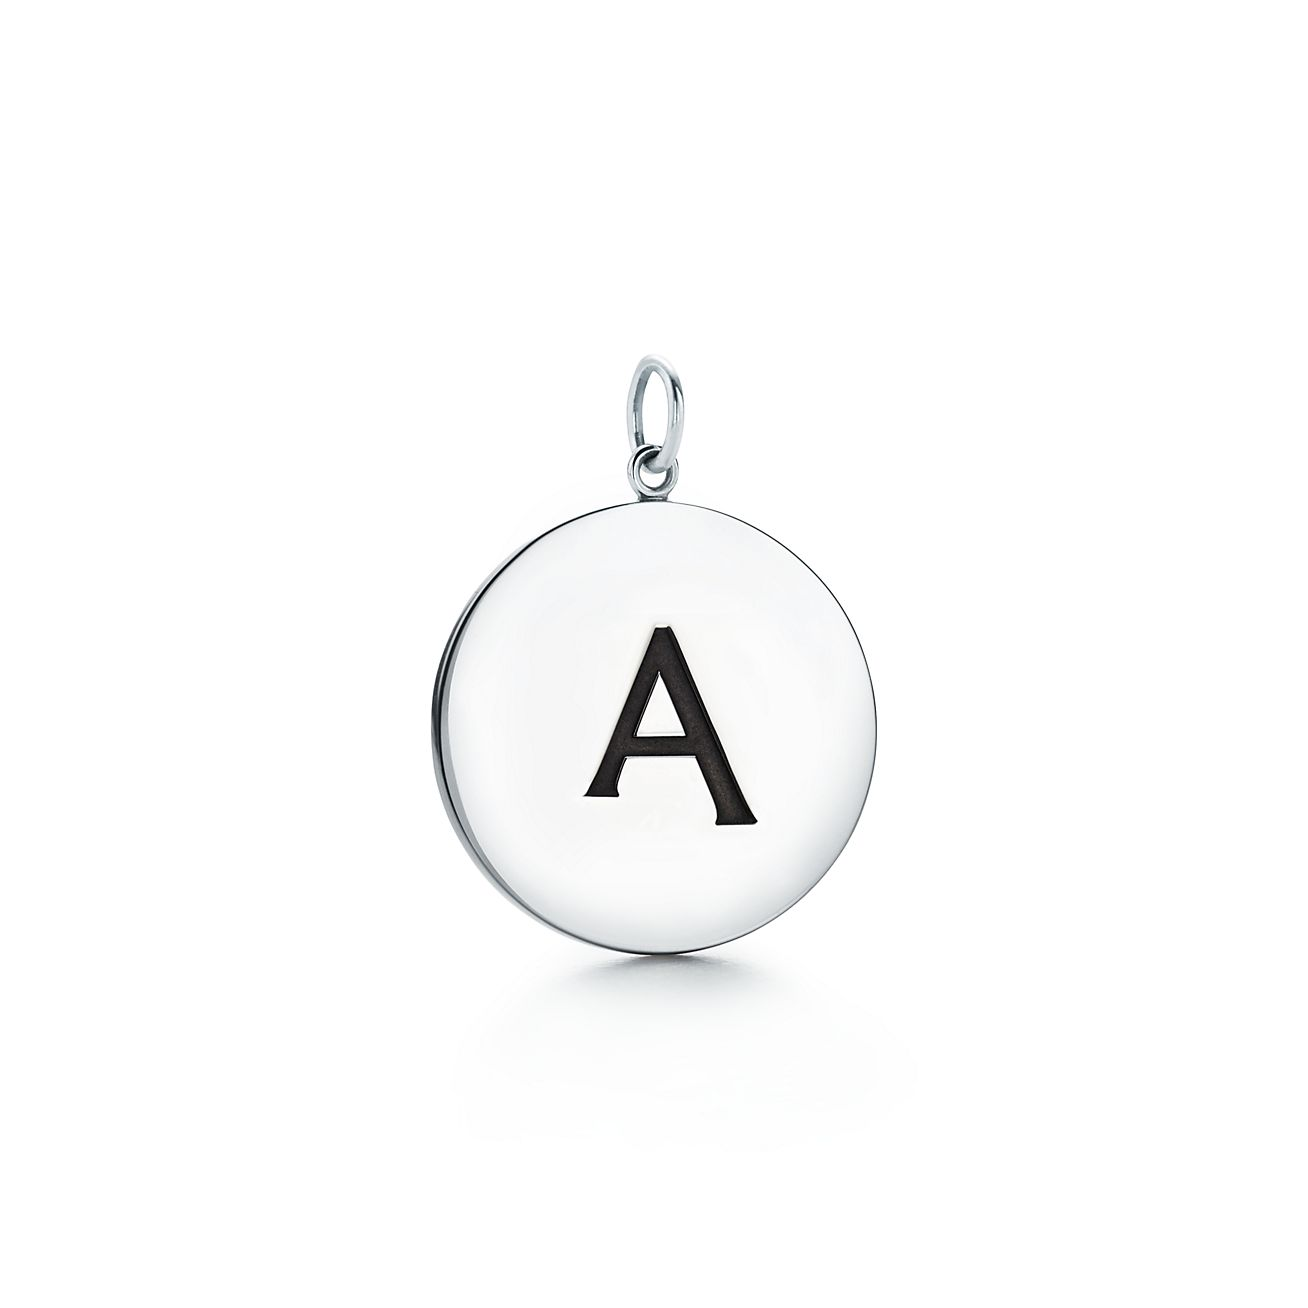 Tiffany Charms alphabet charm in sterling silver Letters A-Z available - Size Z Tiffany & Co.